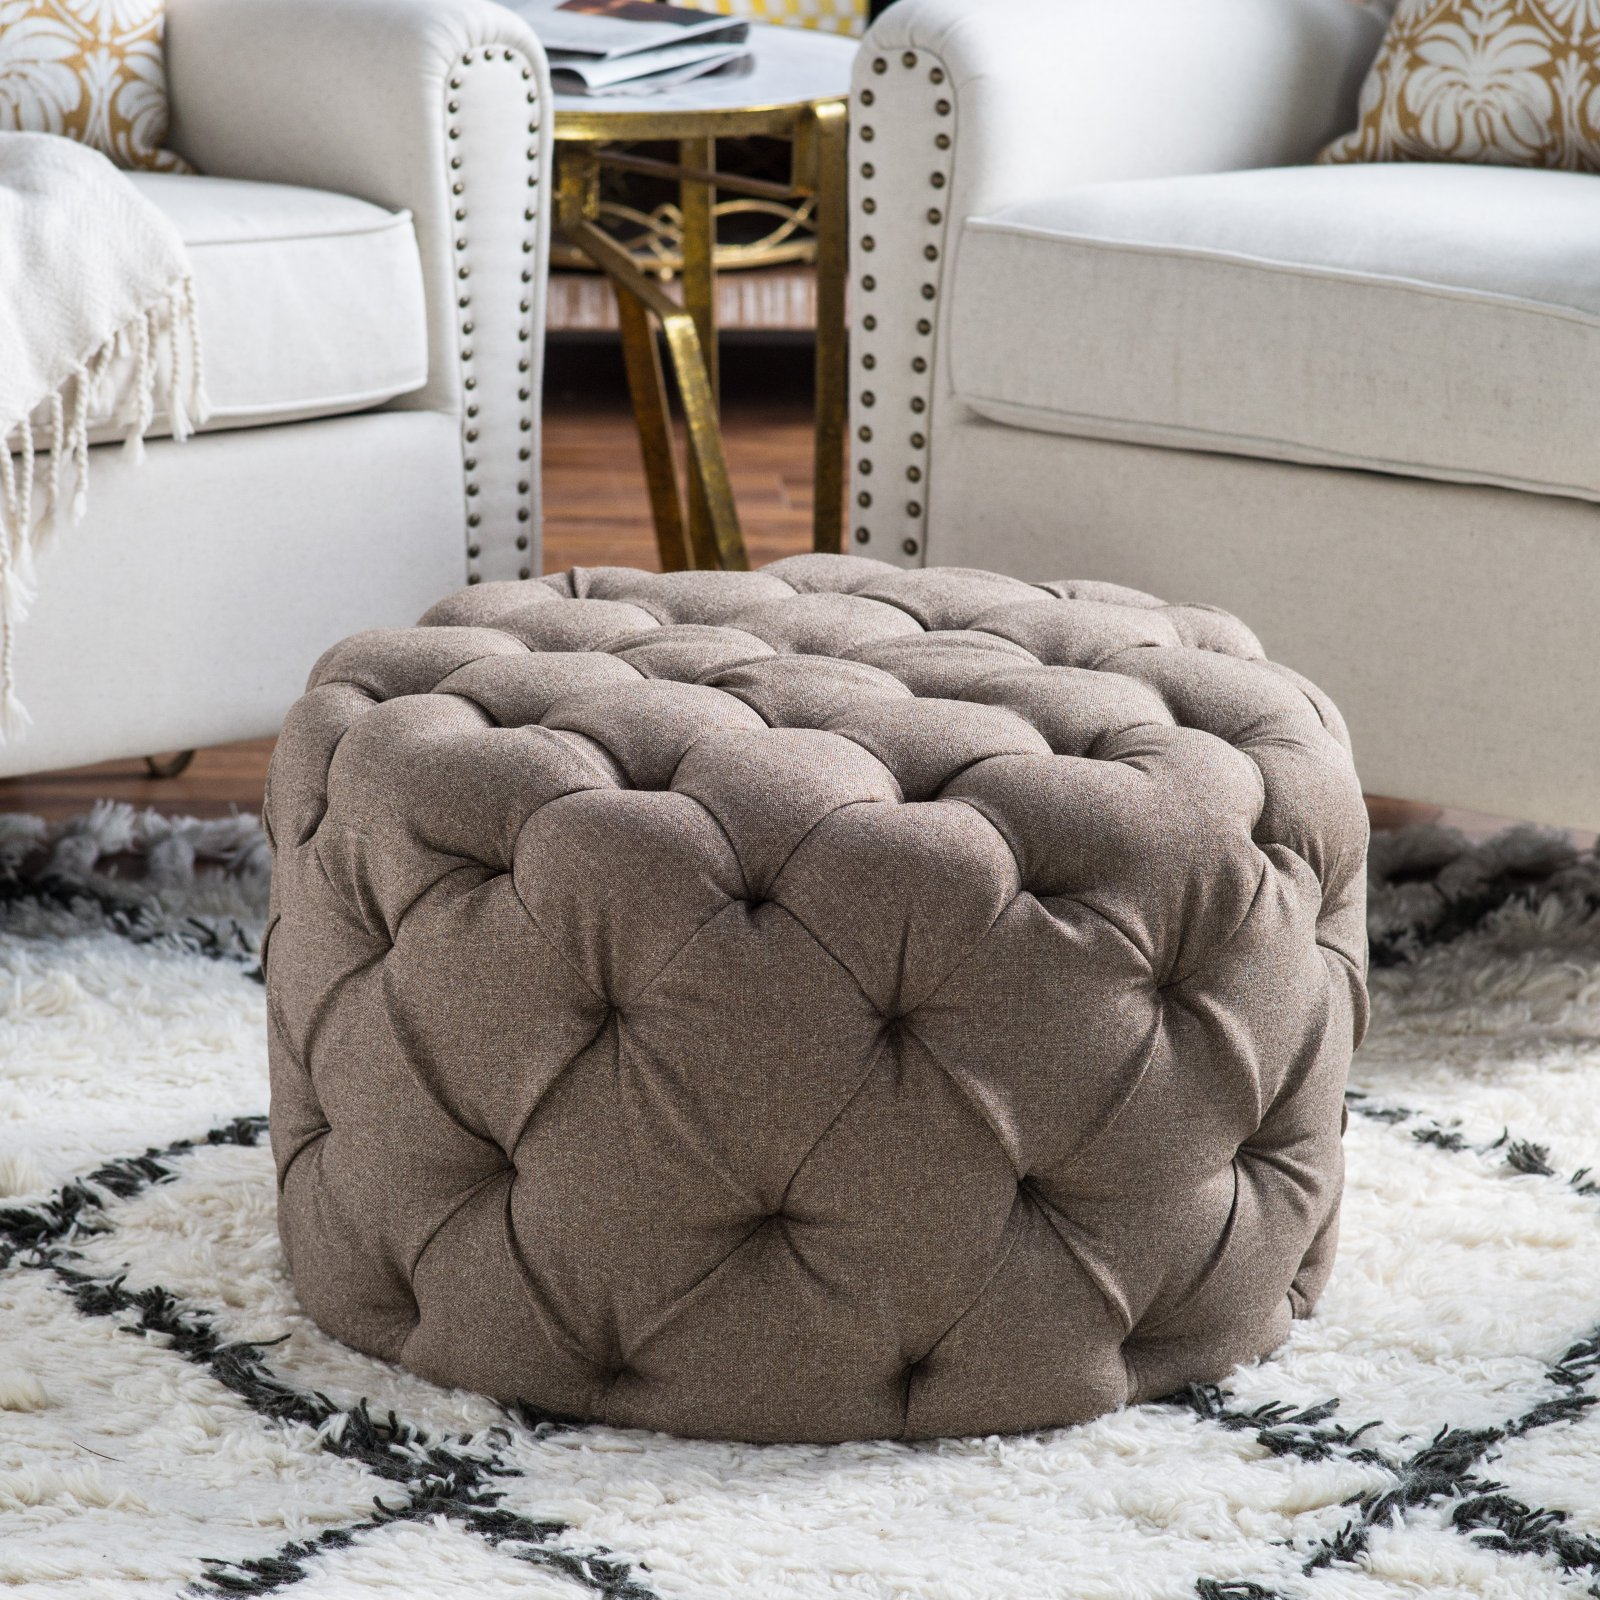 Belham Living Allover Tufted Round Ottoman - Brown